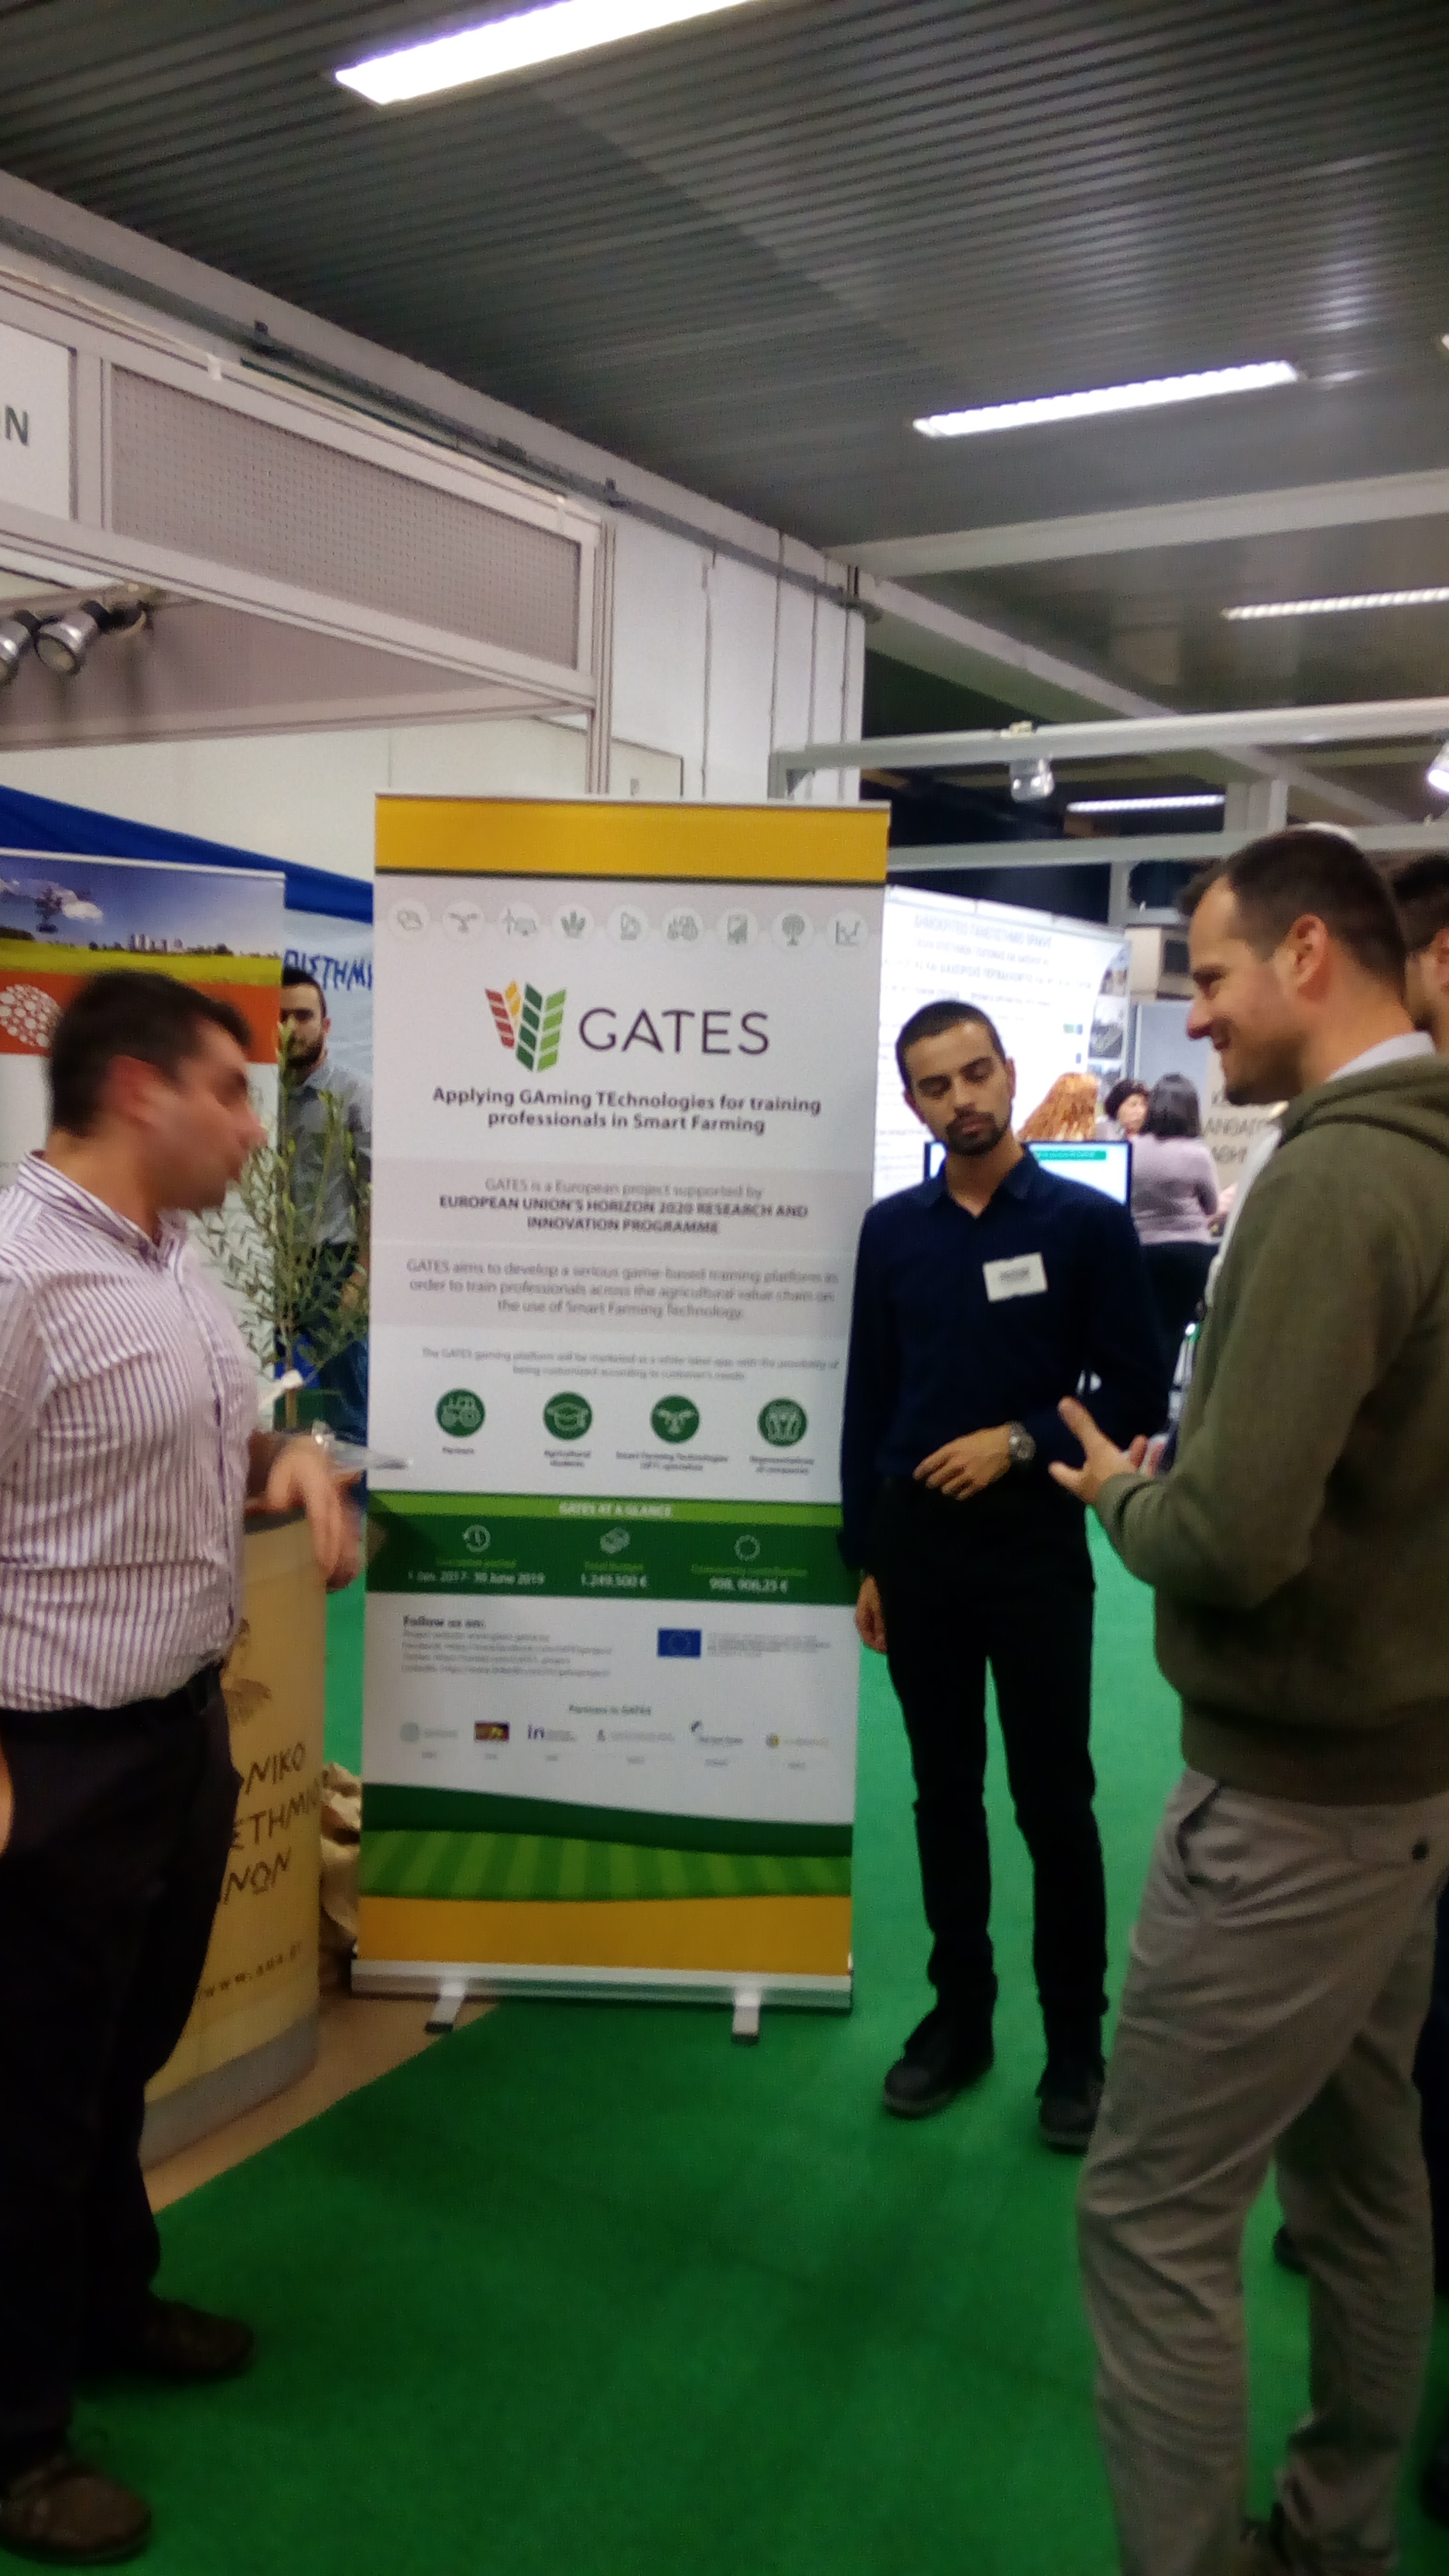 GATES project presentation at AGROTICA, the largest trade fair of the agricultural economy sector in the Balkans and SE Europe